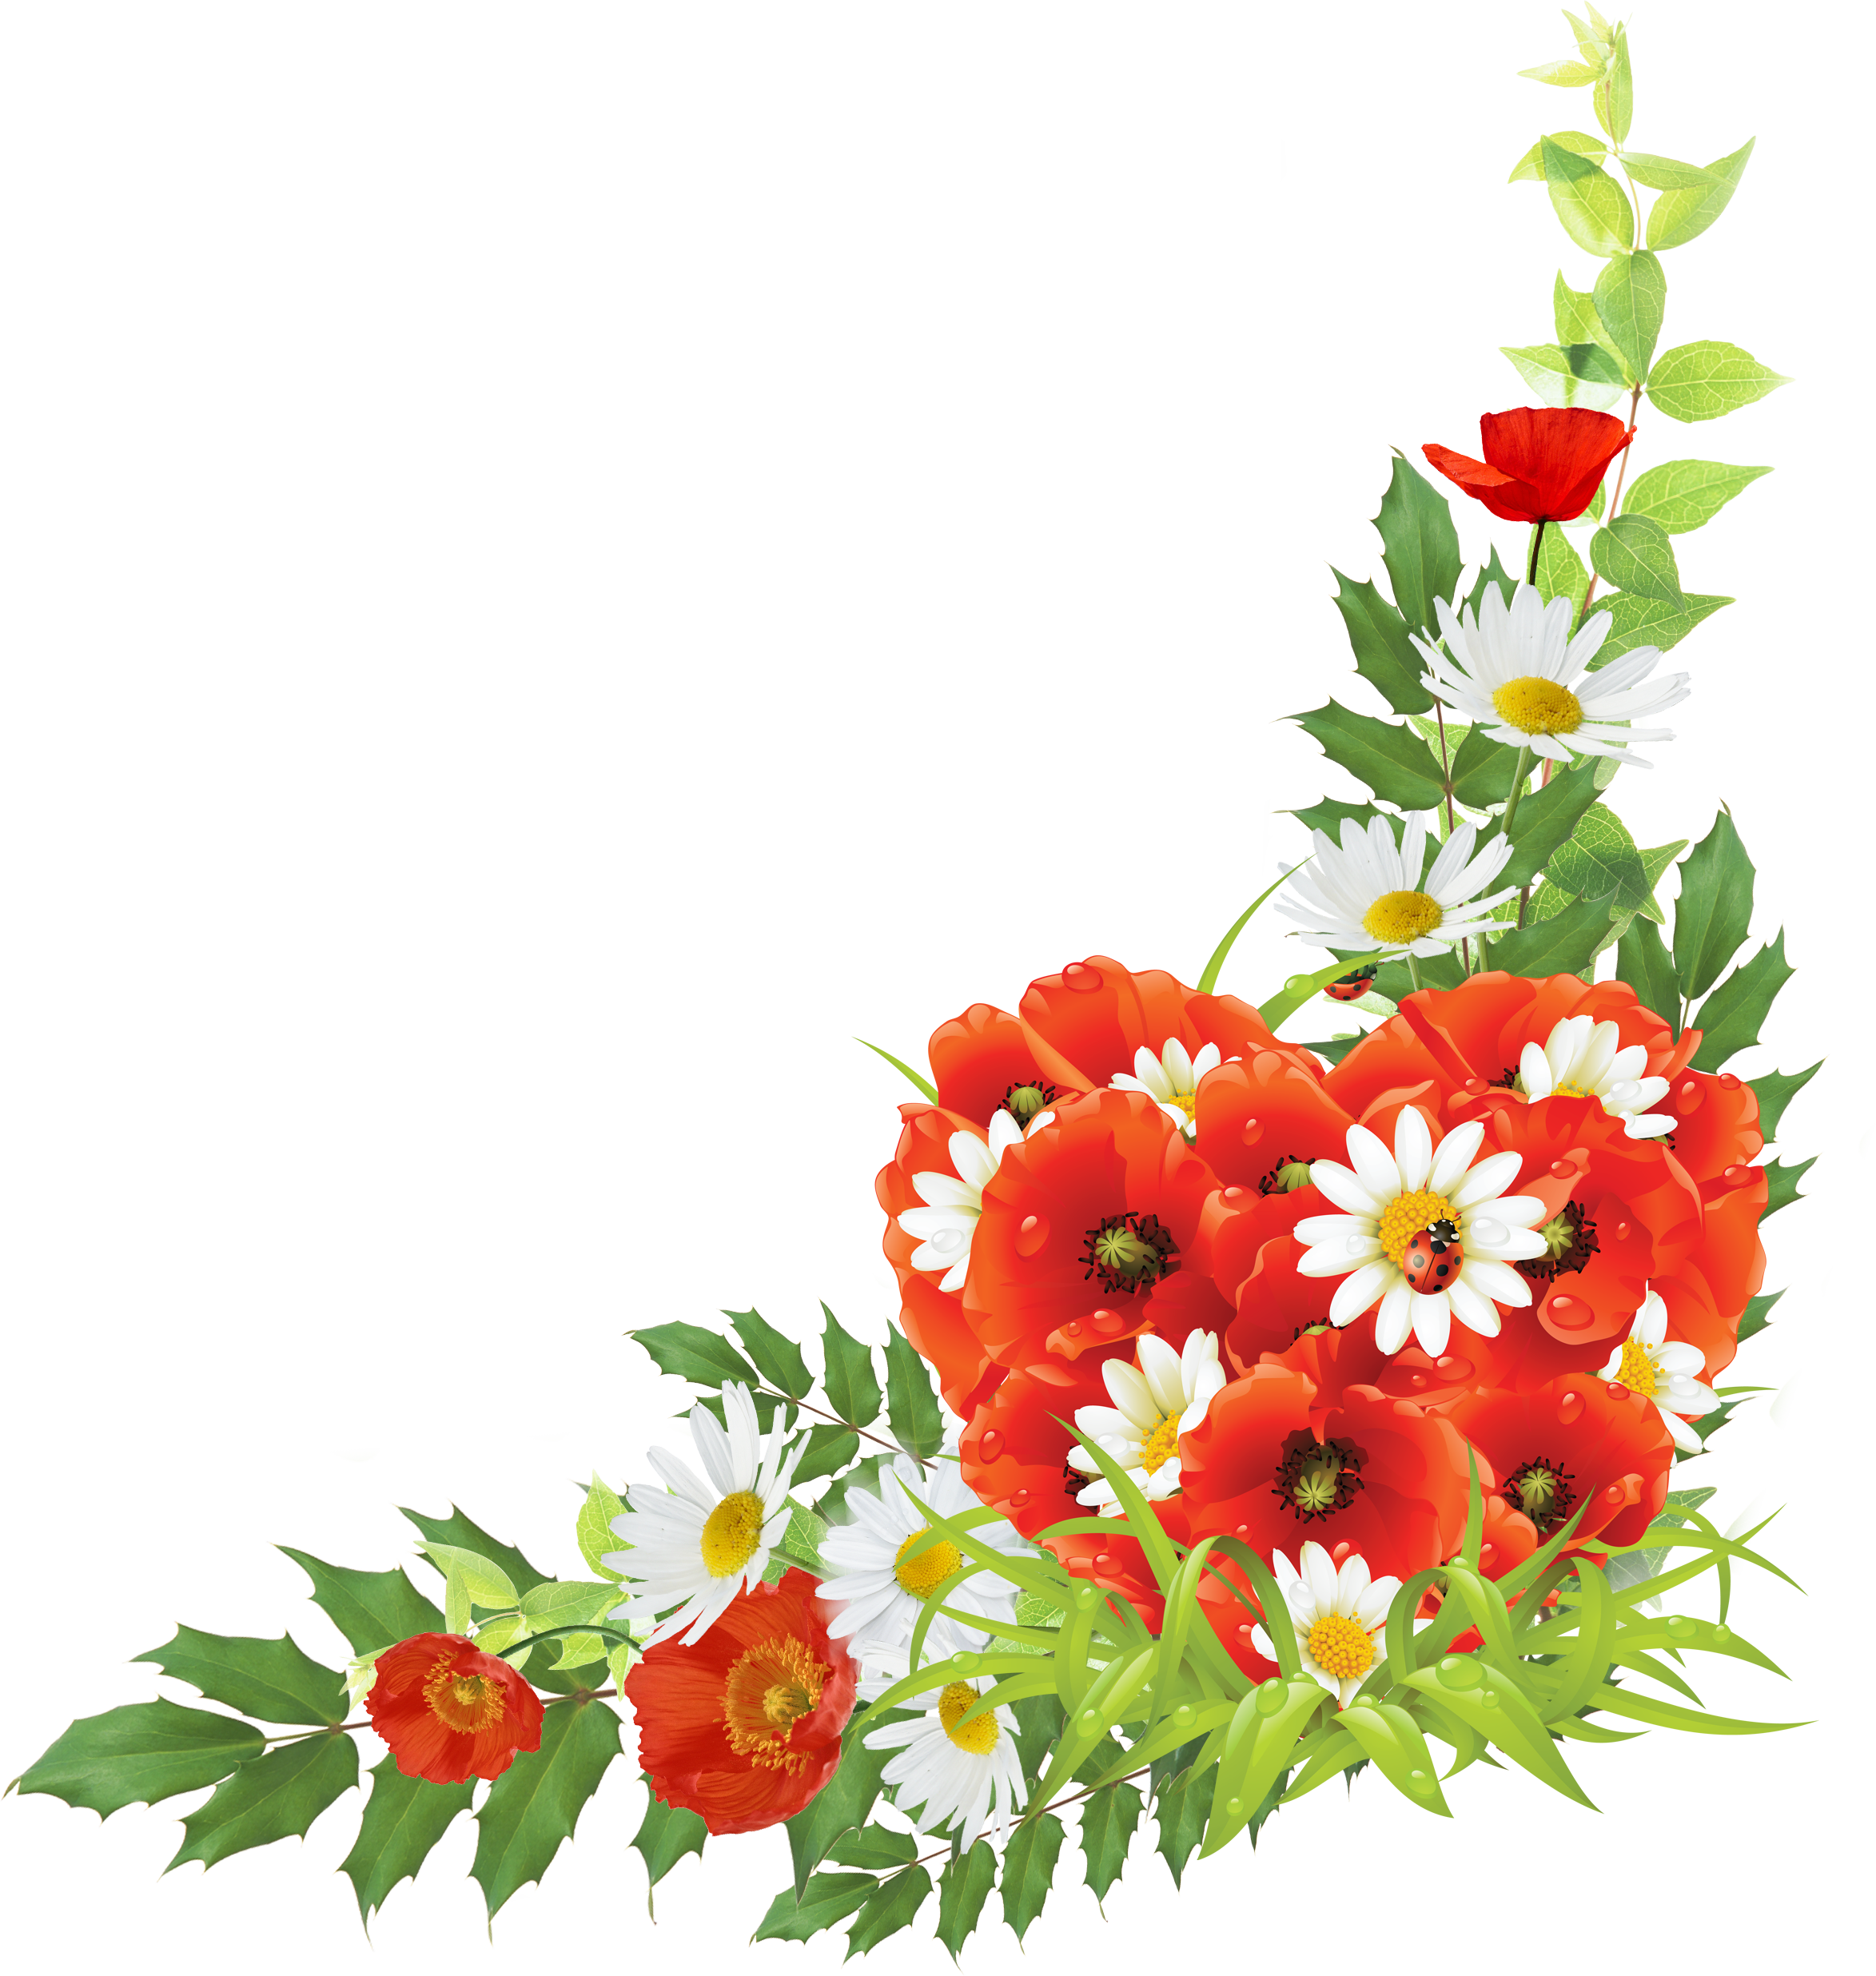 Corner Android Flowers Free Frame PNG Image